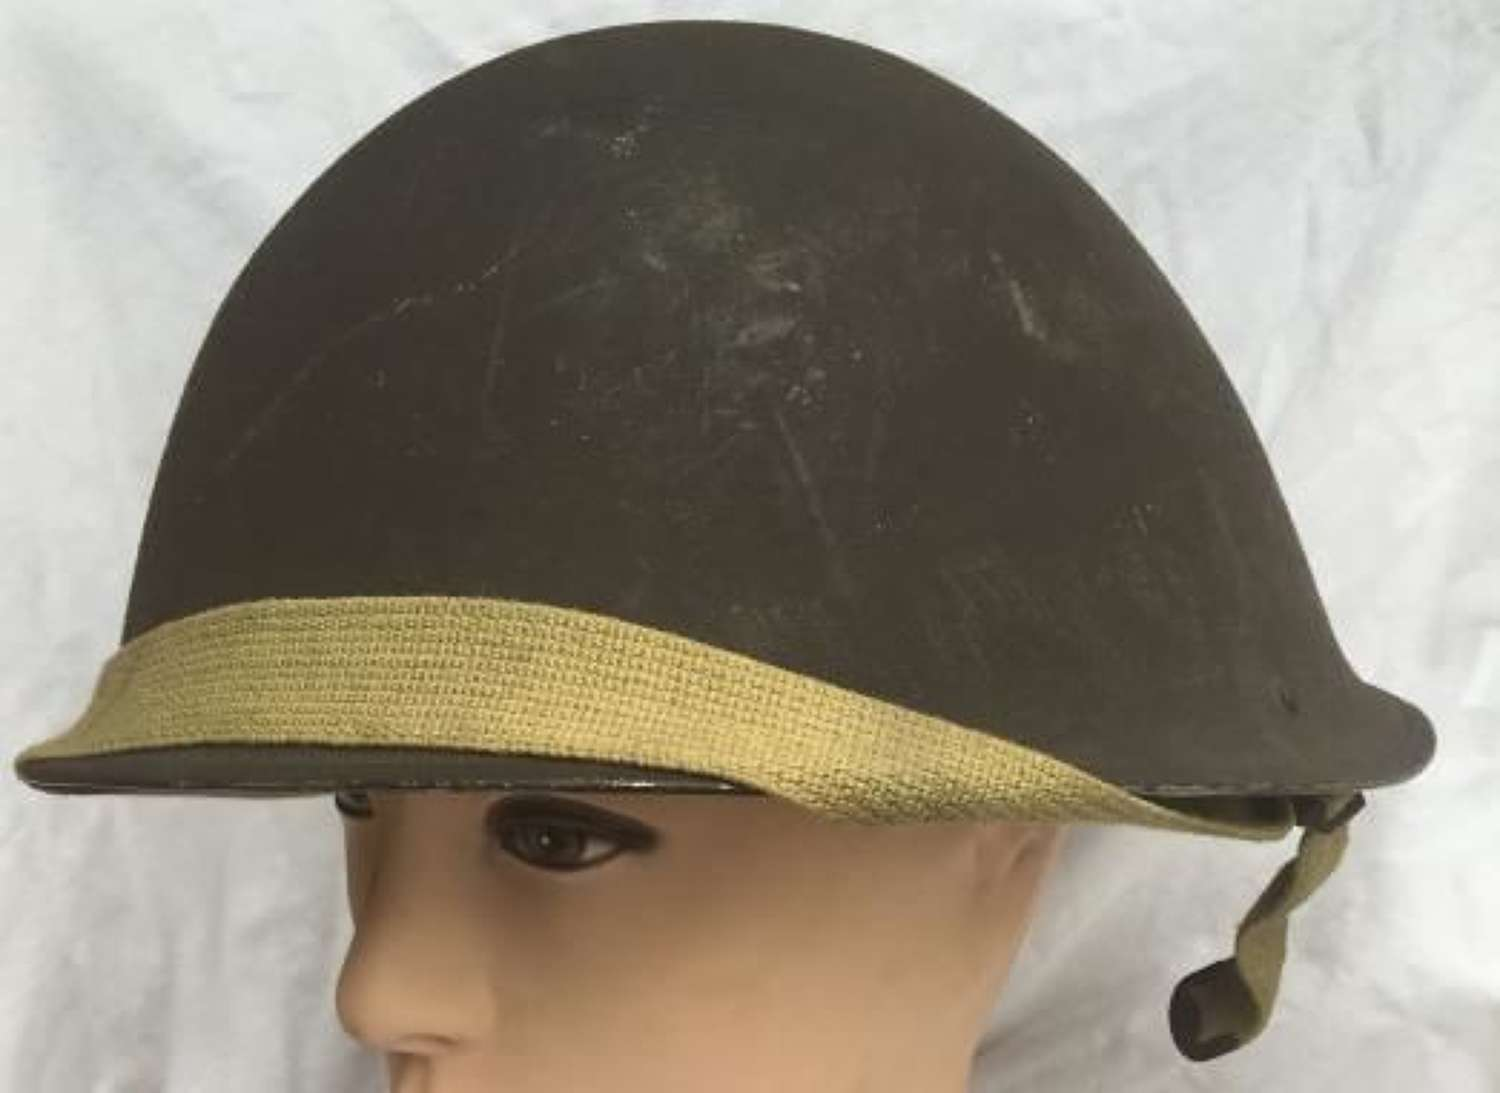 Scare 1945 Dated British Army MK IV 'Turtle' Helmet